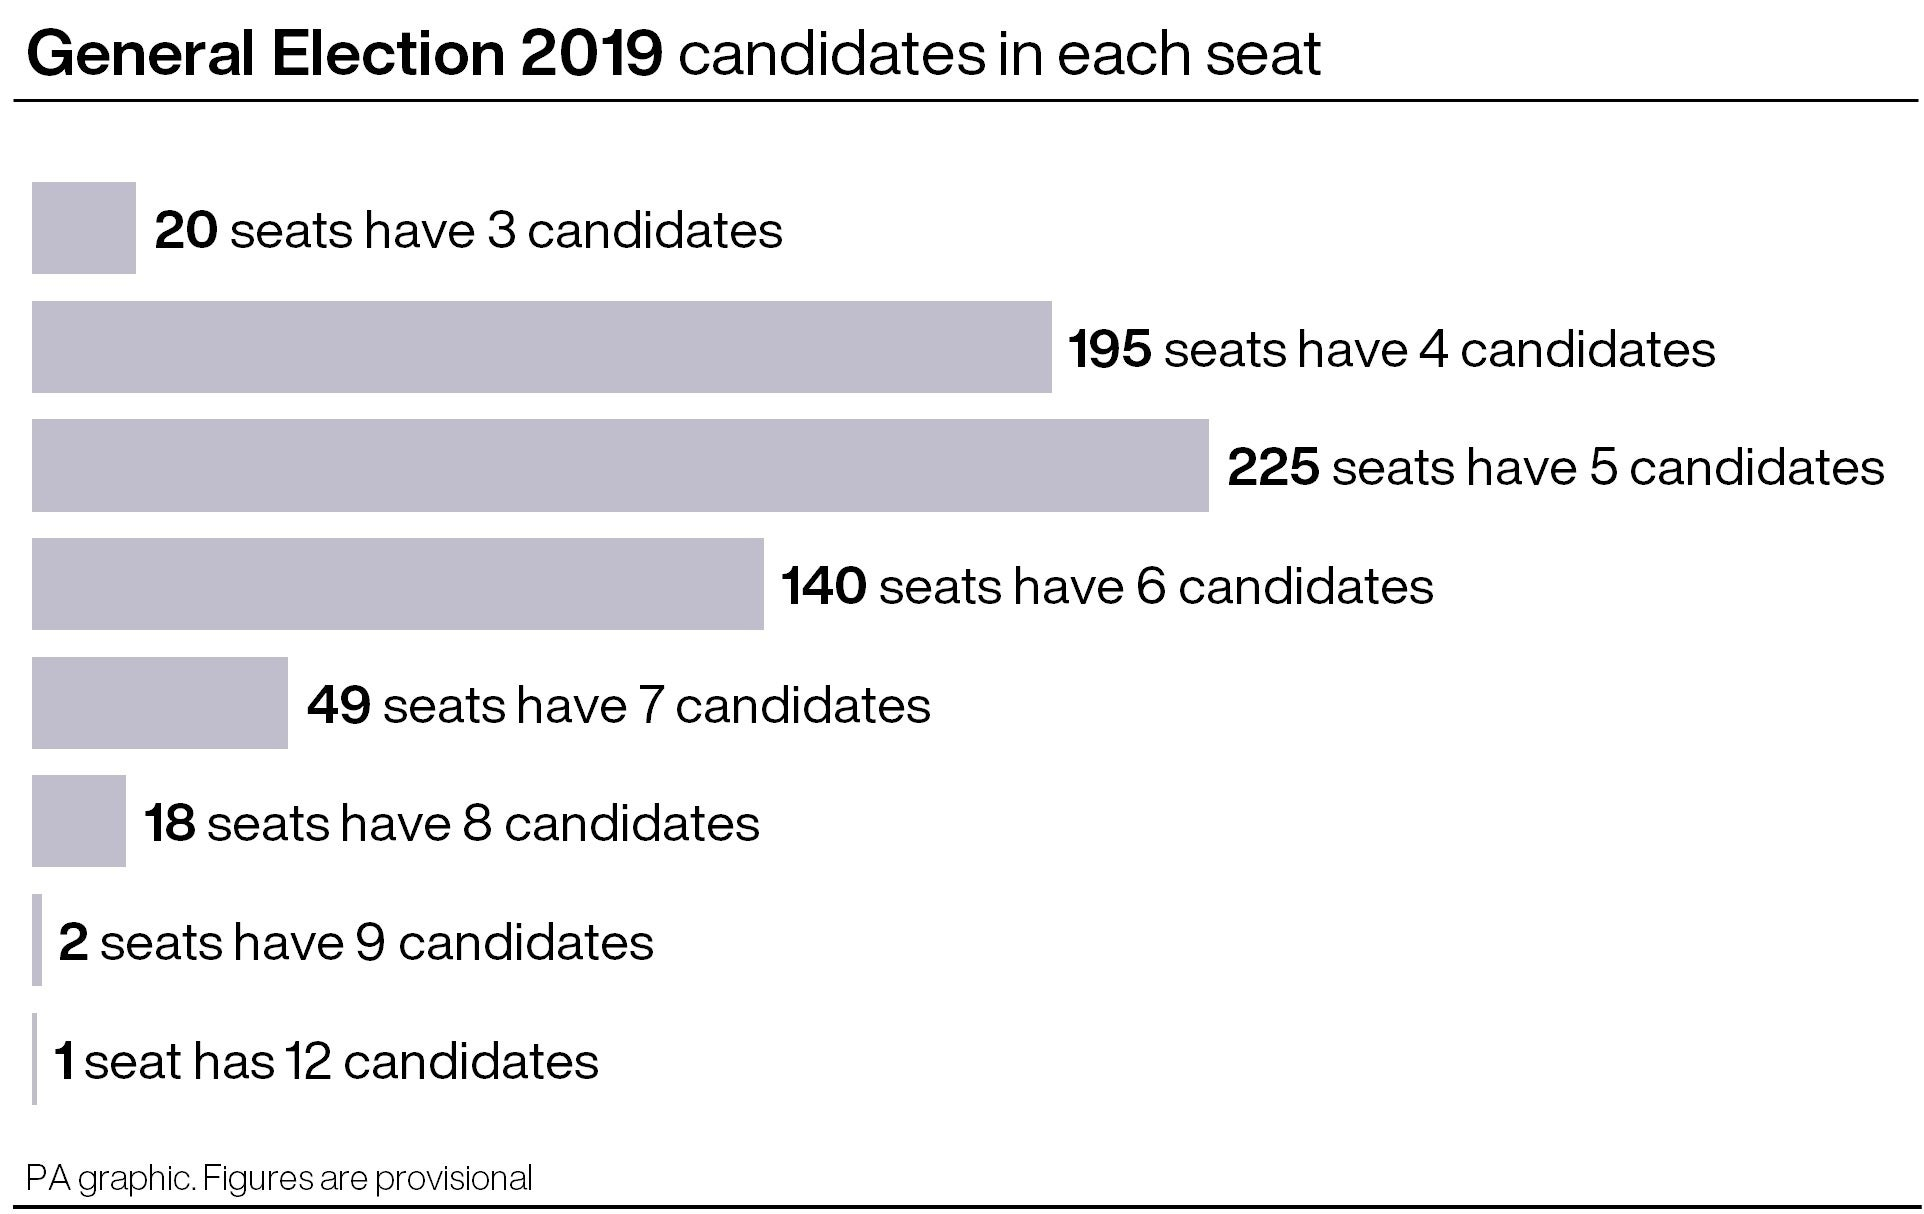 Number of candidates per seat